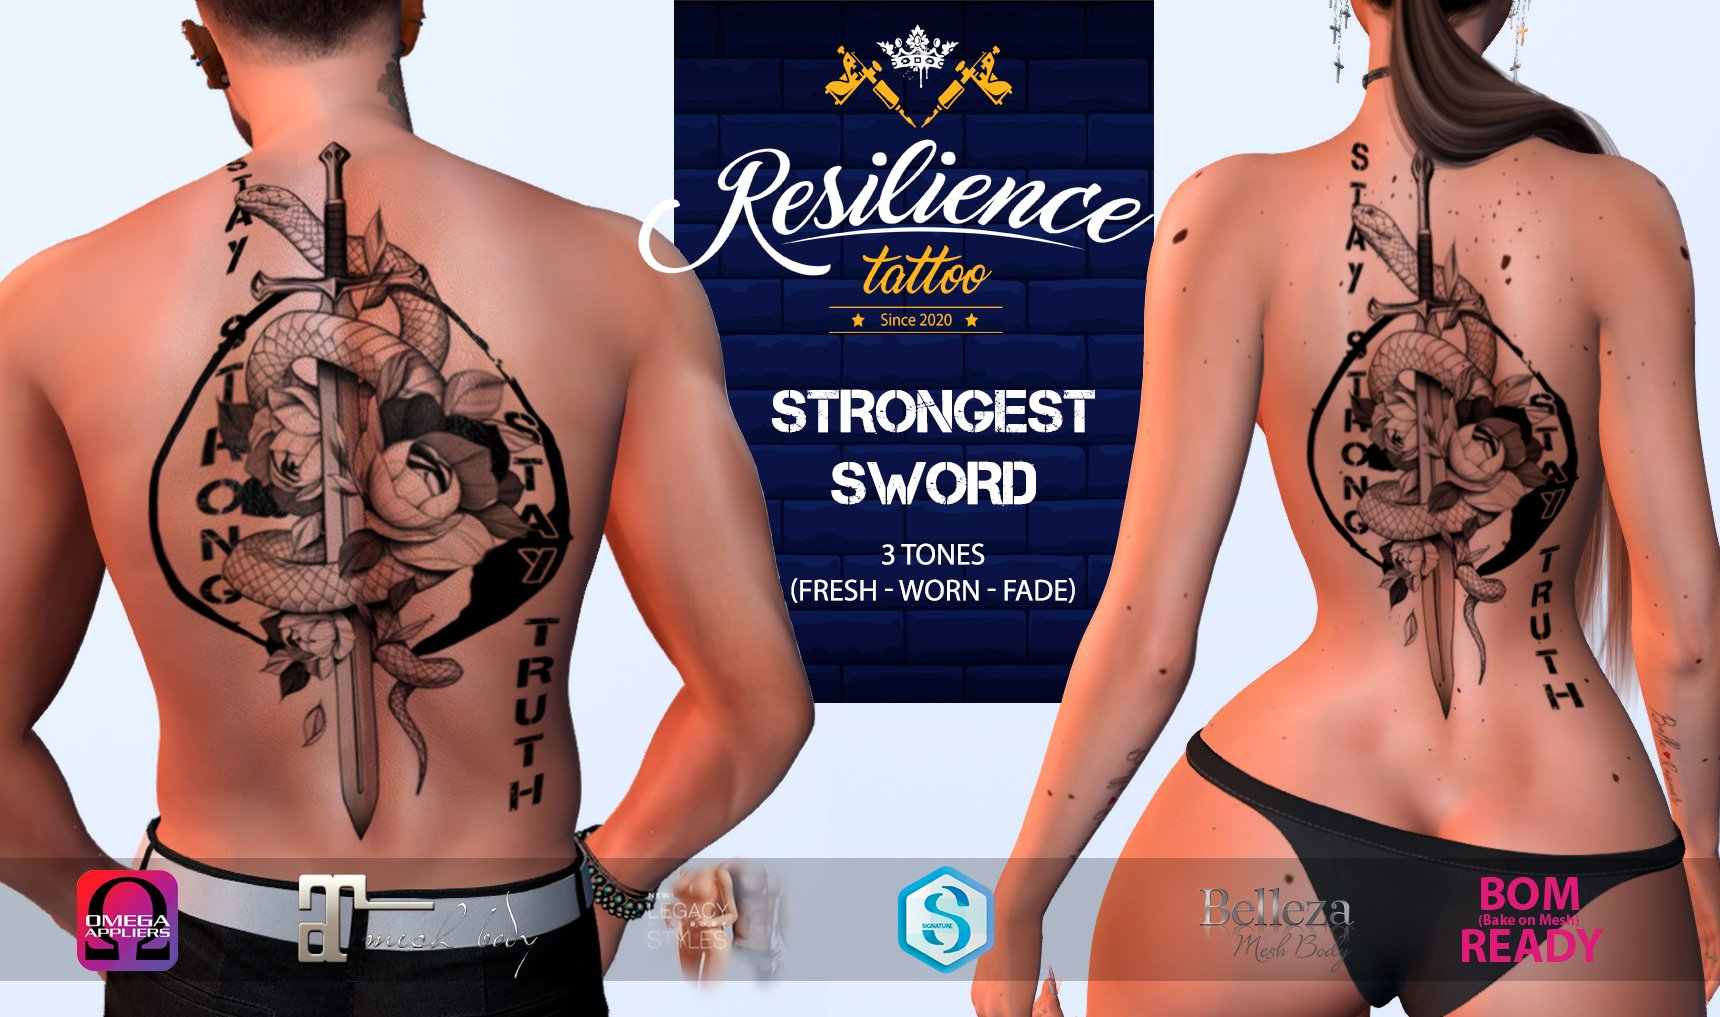 resilience tattoo